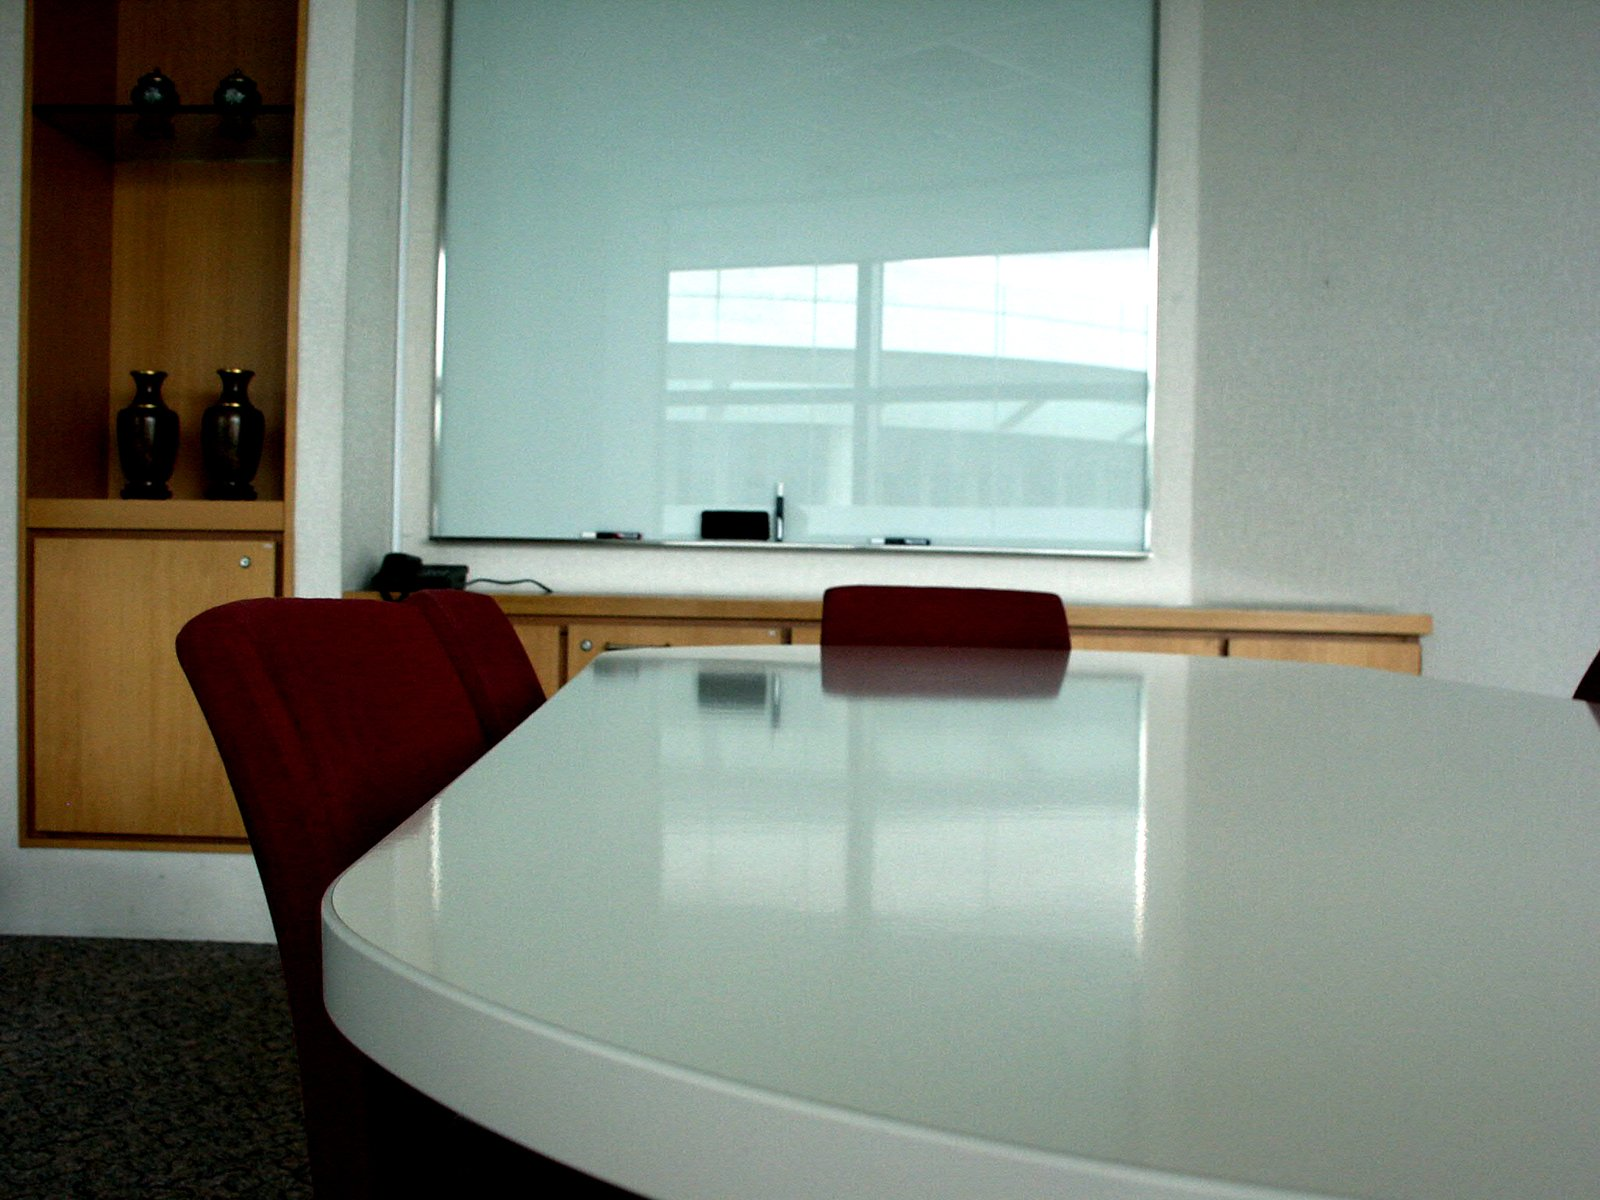 Free Meeting Room Stock Photo Freeimages Com